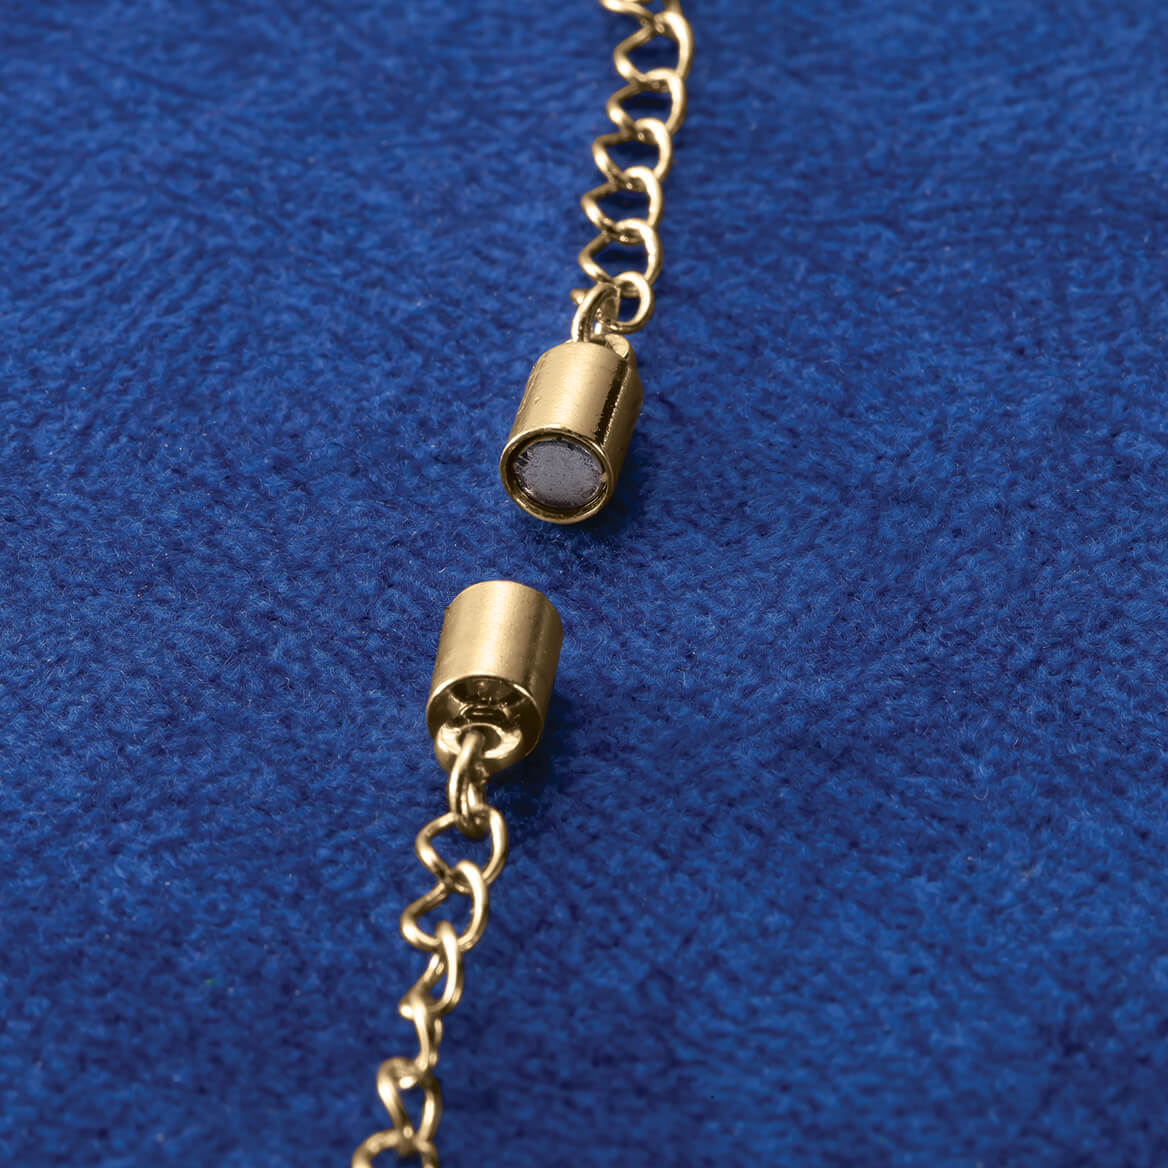 Pearl & Chain Magnetic Necklace Extenders Set of 4-369415